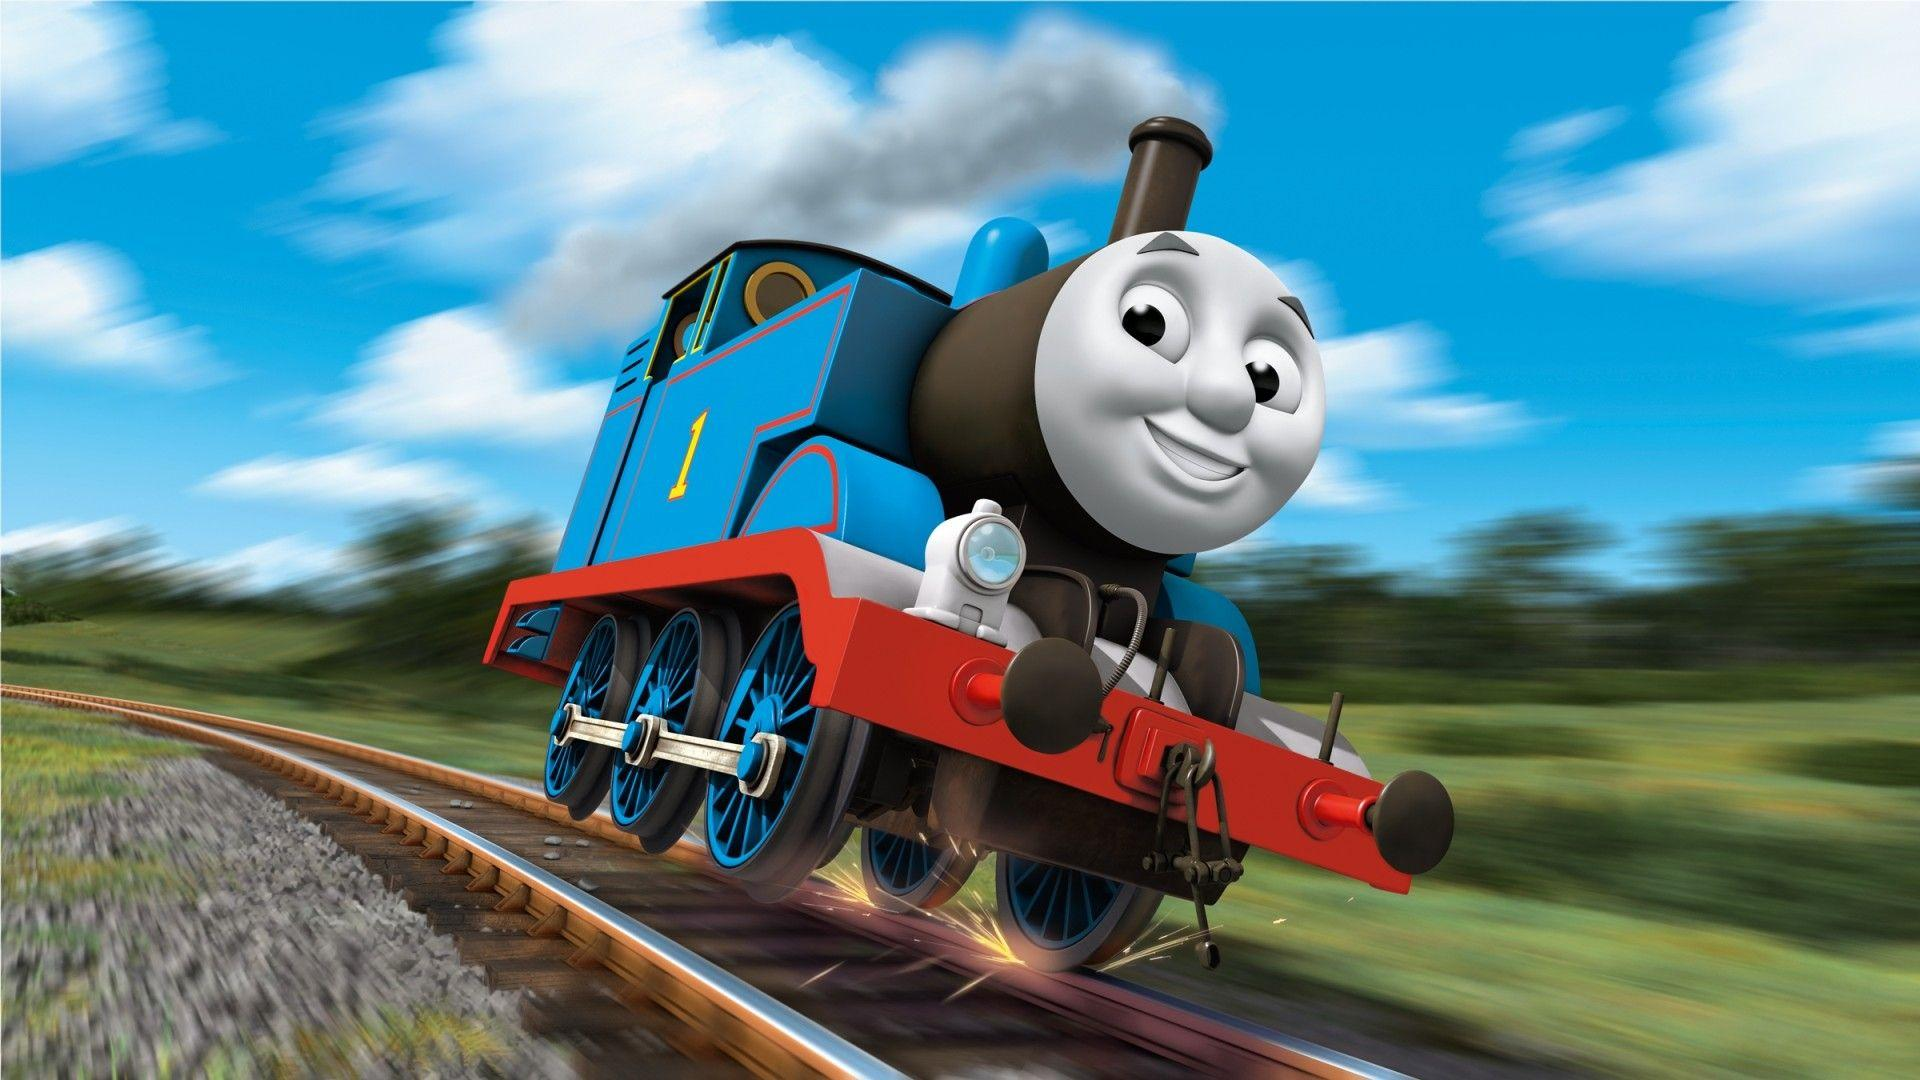 Thomas Train Wallpapers Wallpaper Cave